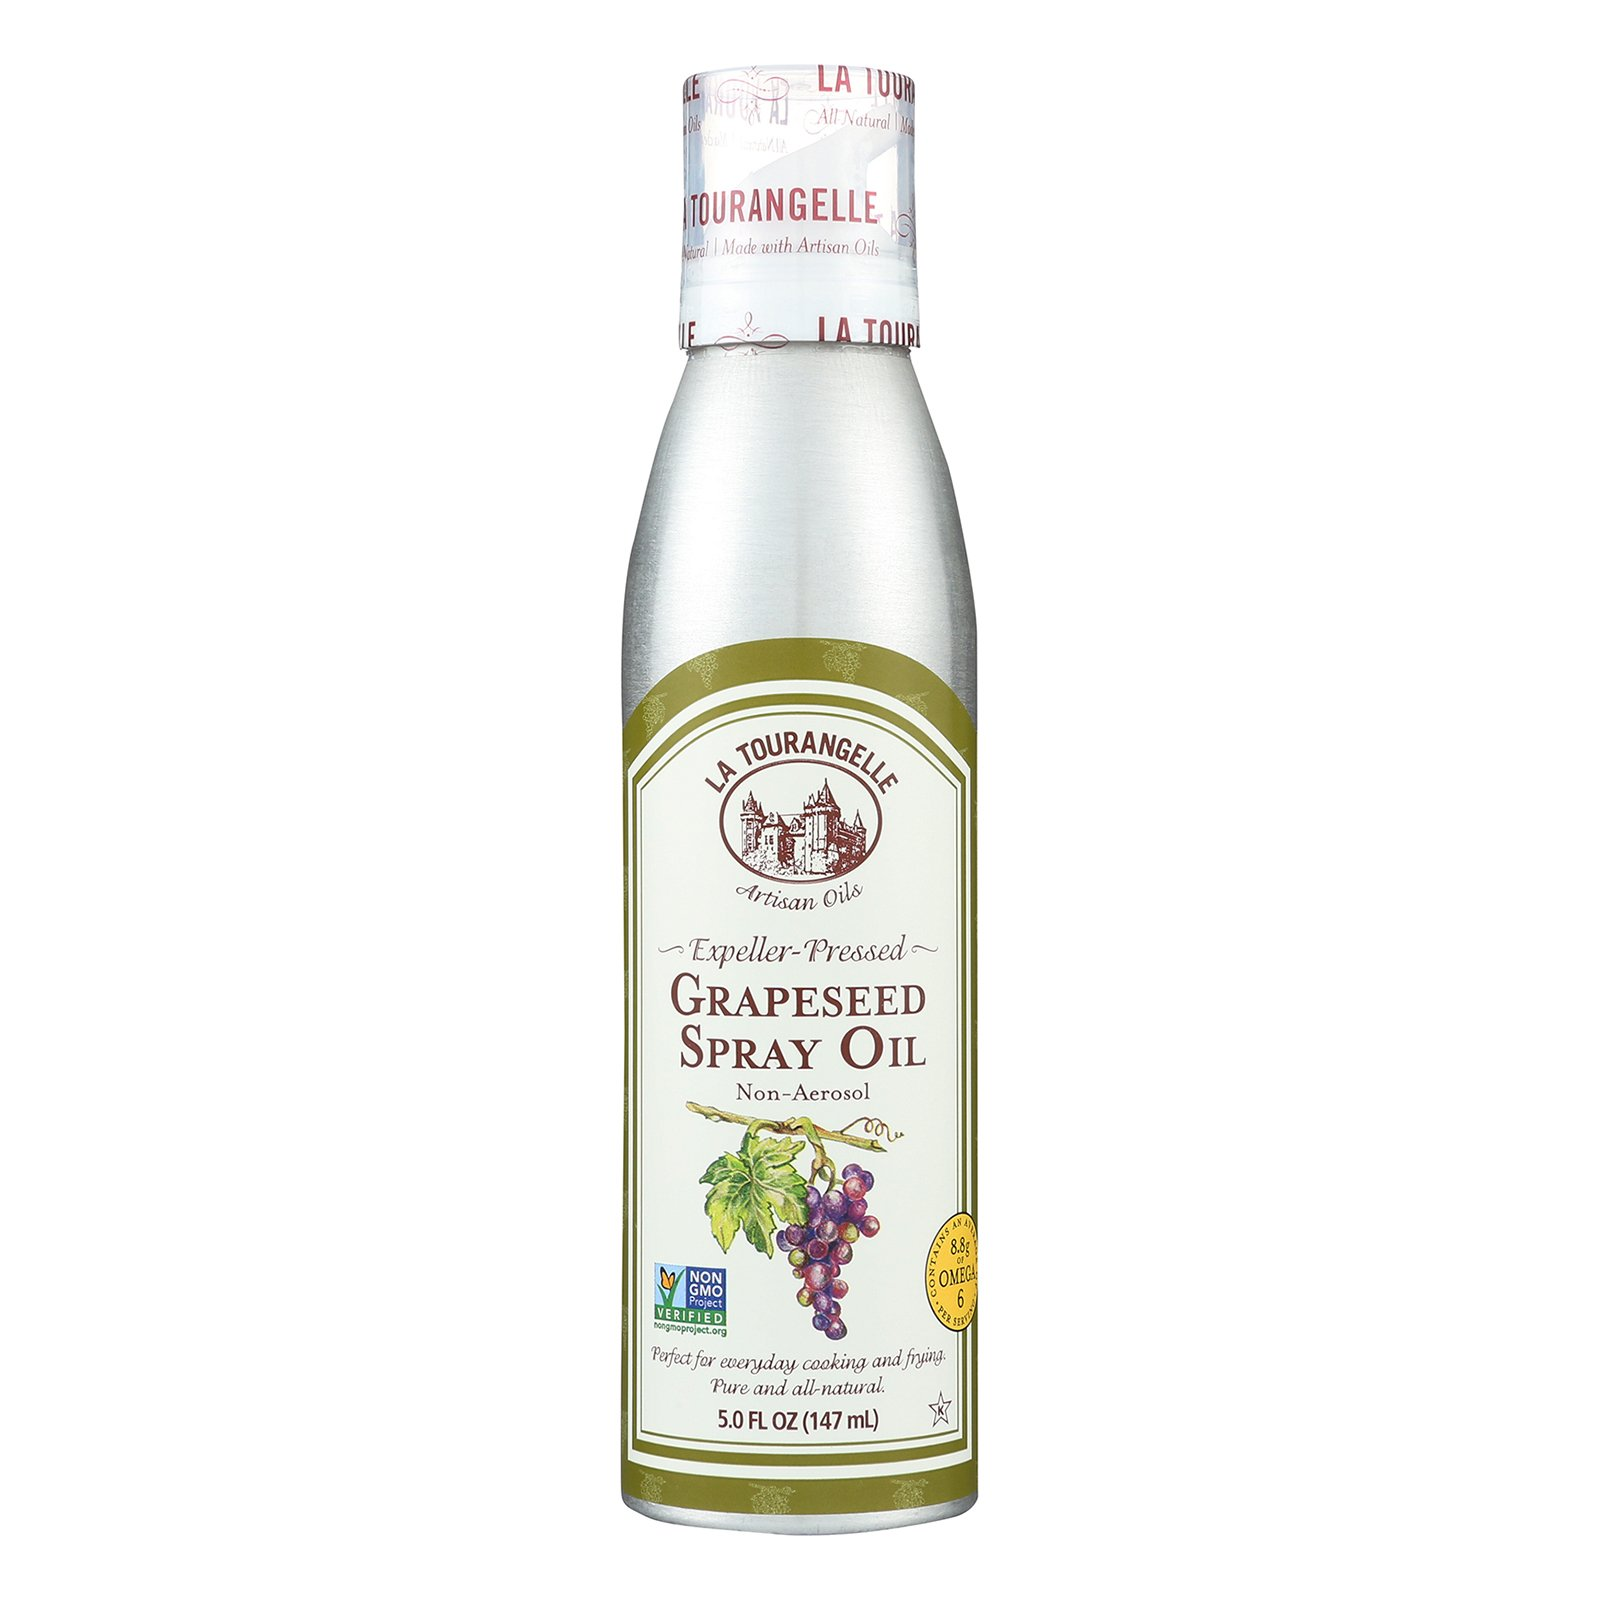 La Tourangelle Grapeseed Spray Oil - Case of 6 - 5 Fl oz. by La Tourangelle